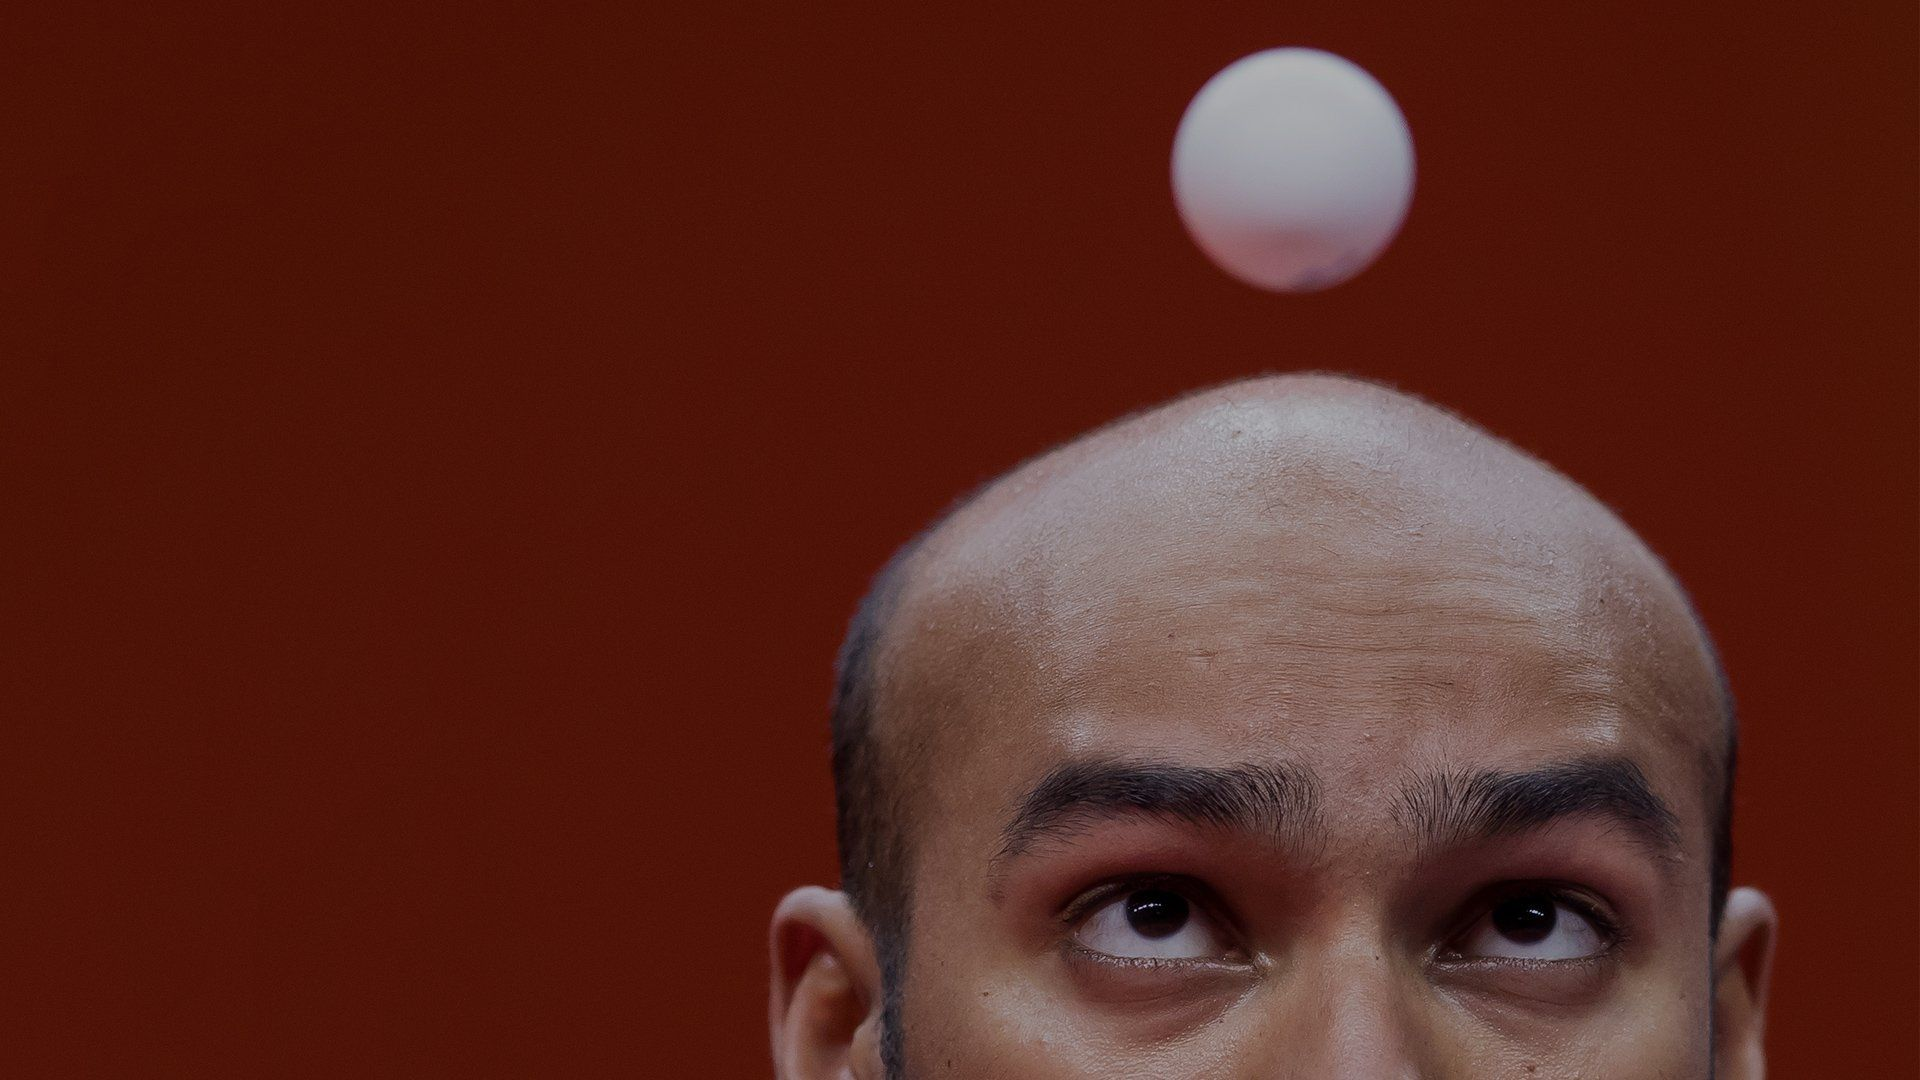 A close-up of table tennis player Rhikesh Taucoory with the ball appearing to hover just in front of his face. Photo by Mark Kolbe.